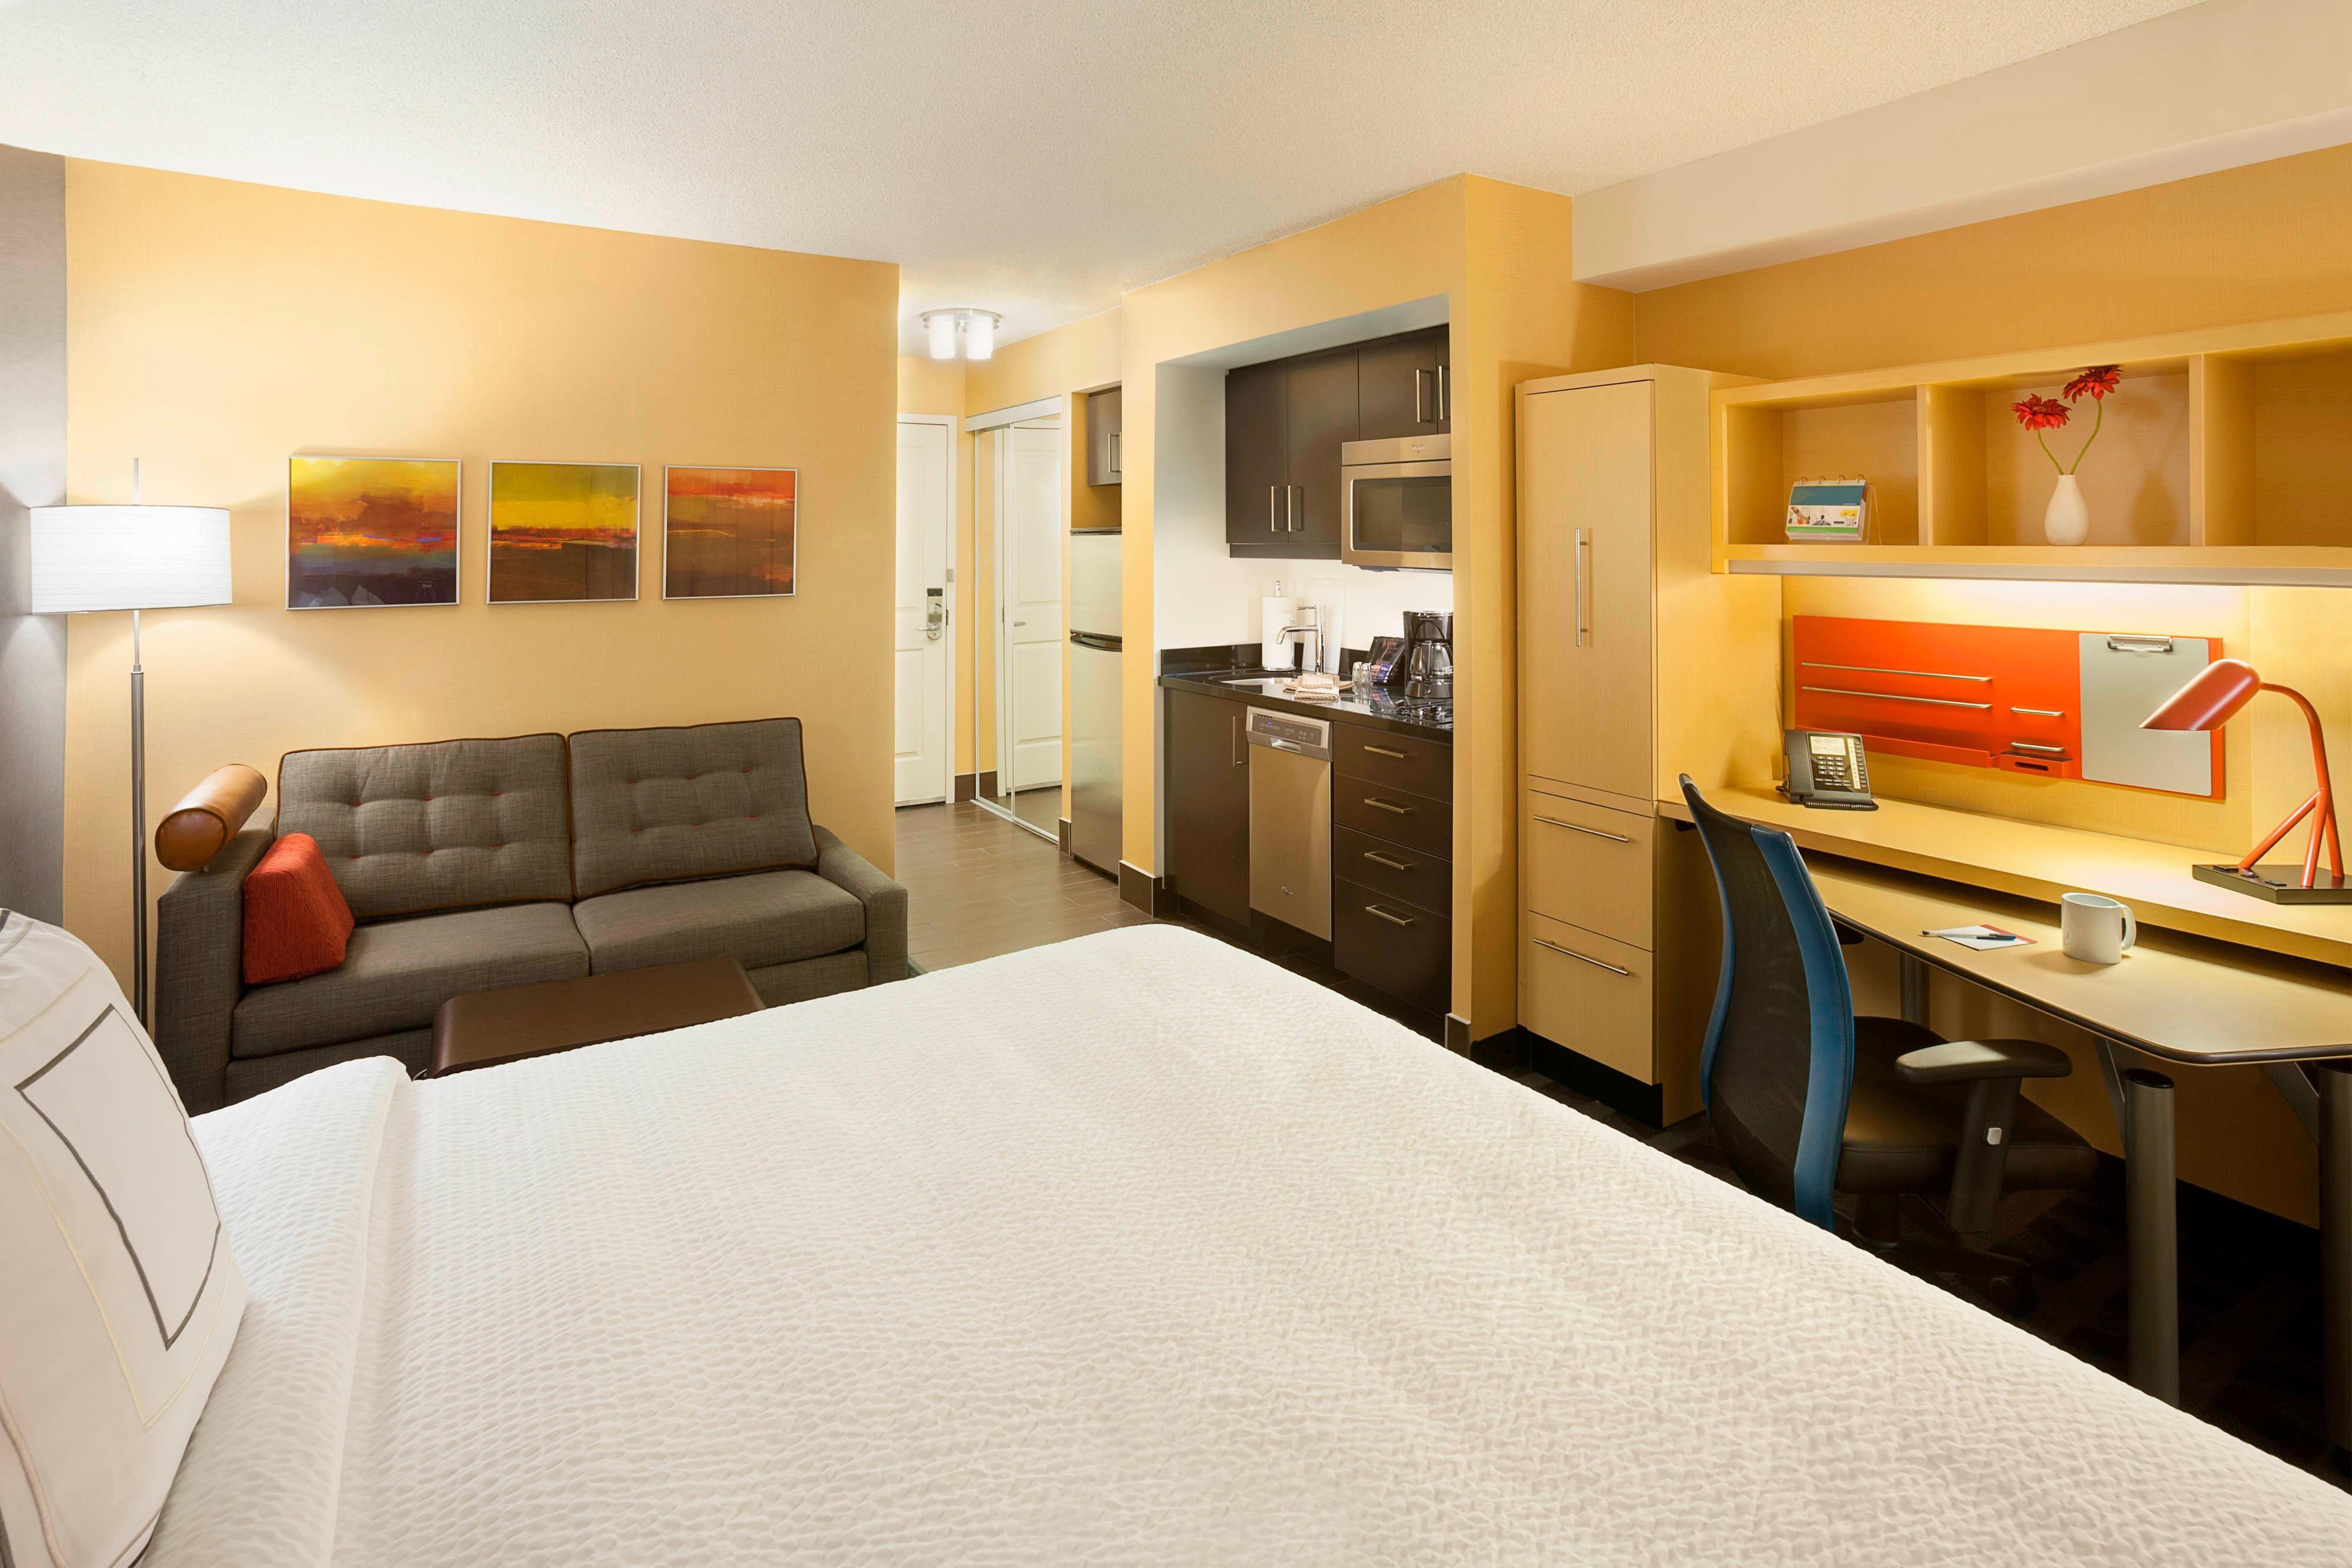 TownePlace Suites King Bed Room